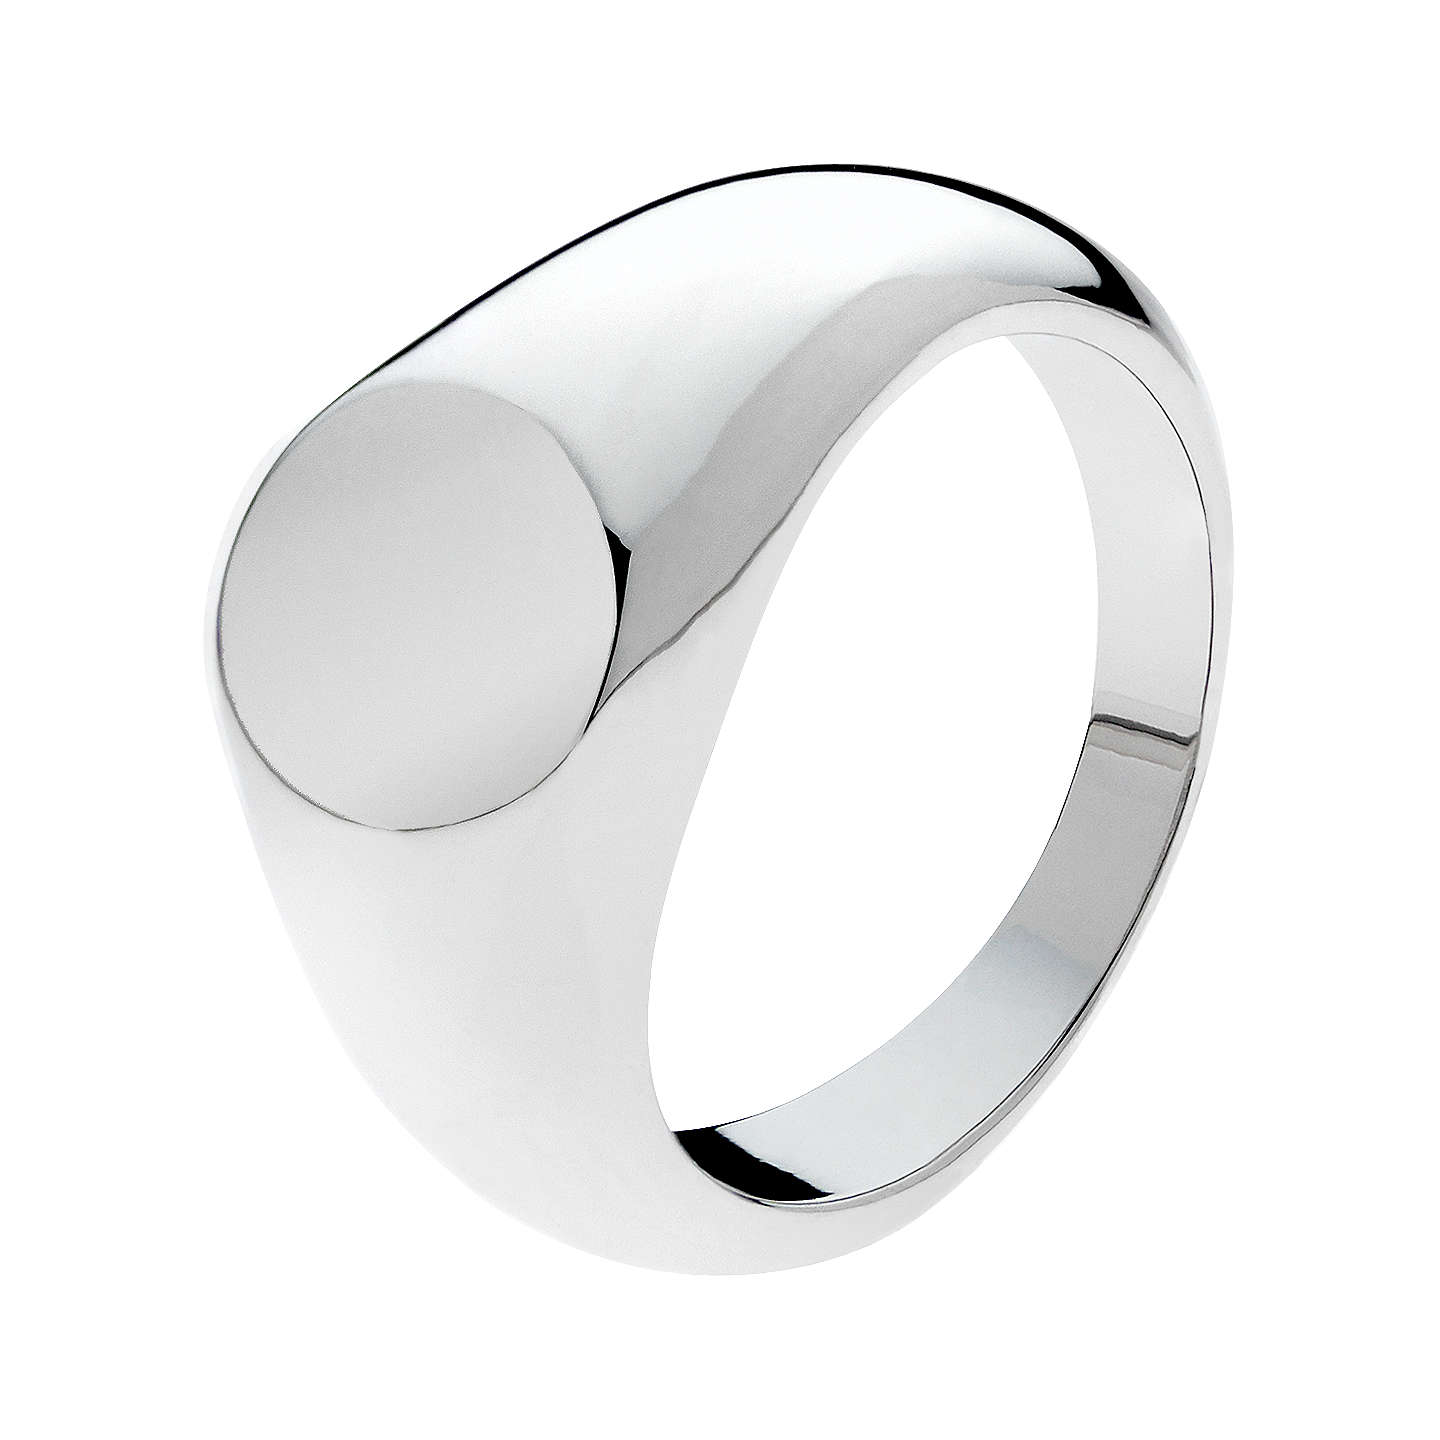 class rings silver ring ringscollection initial details women ori signet men fraternal